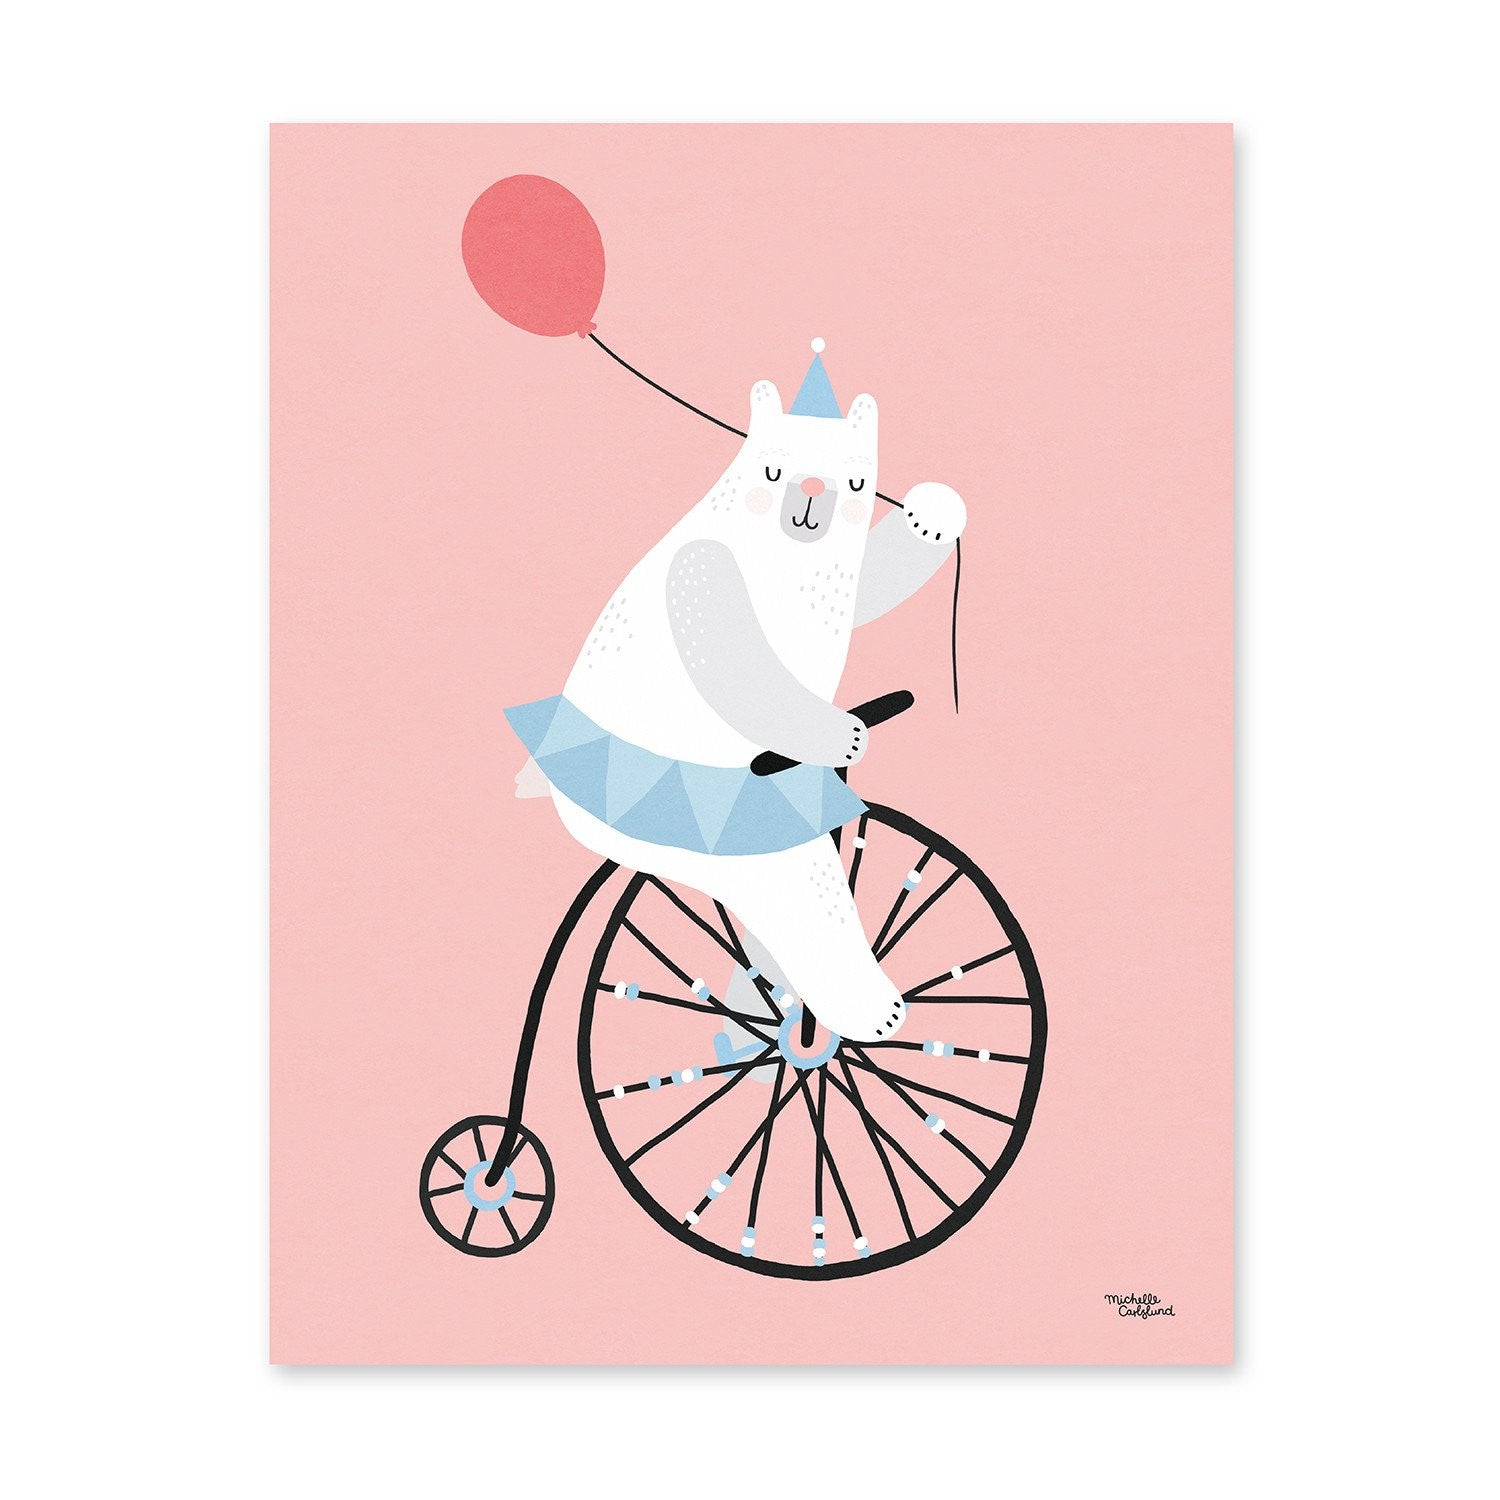 Michelle Carlslund : Affiche Cycling Bear rose - Décoration murale